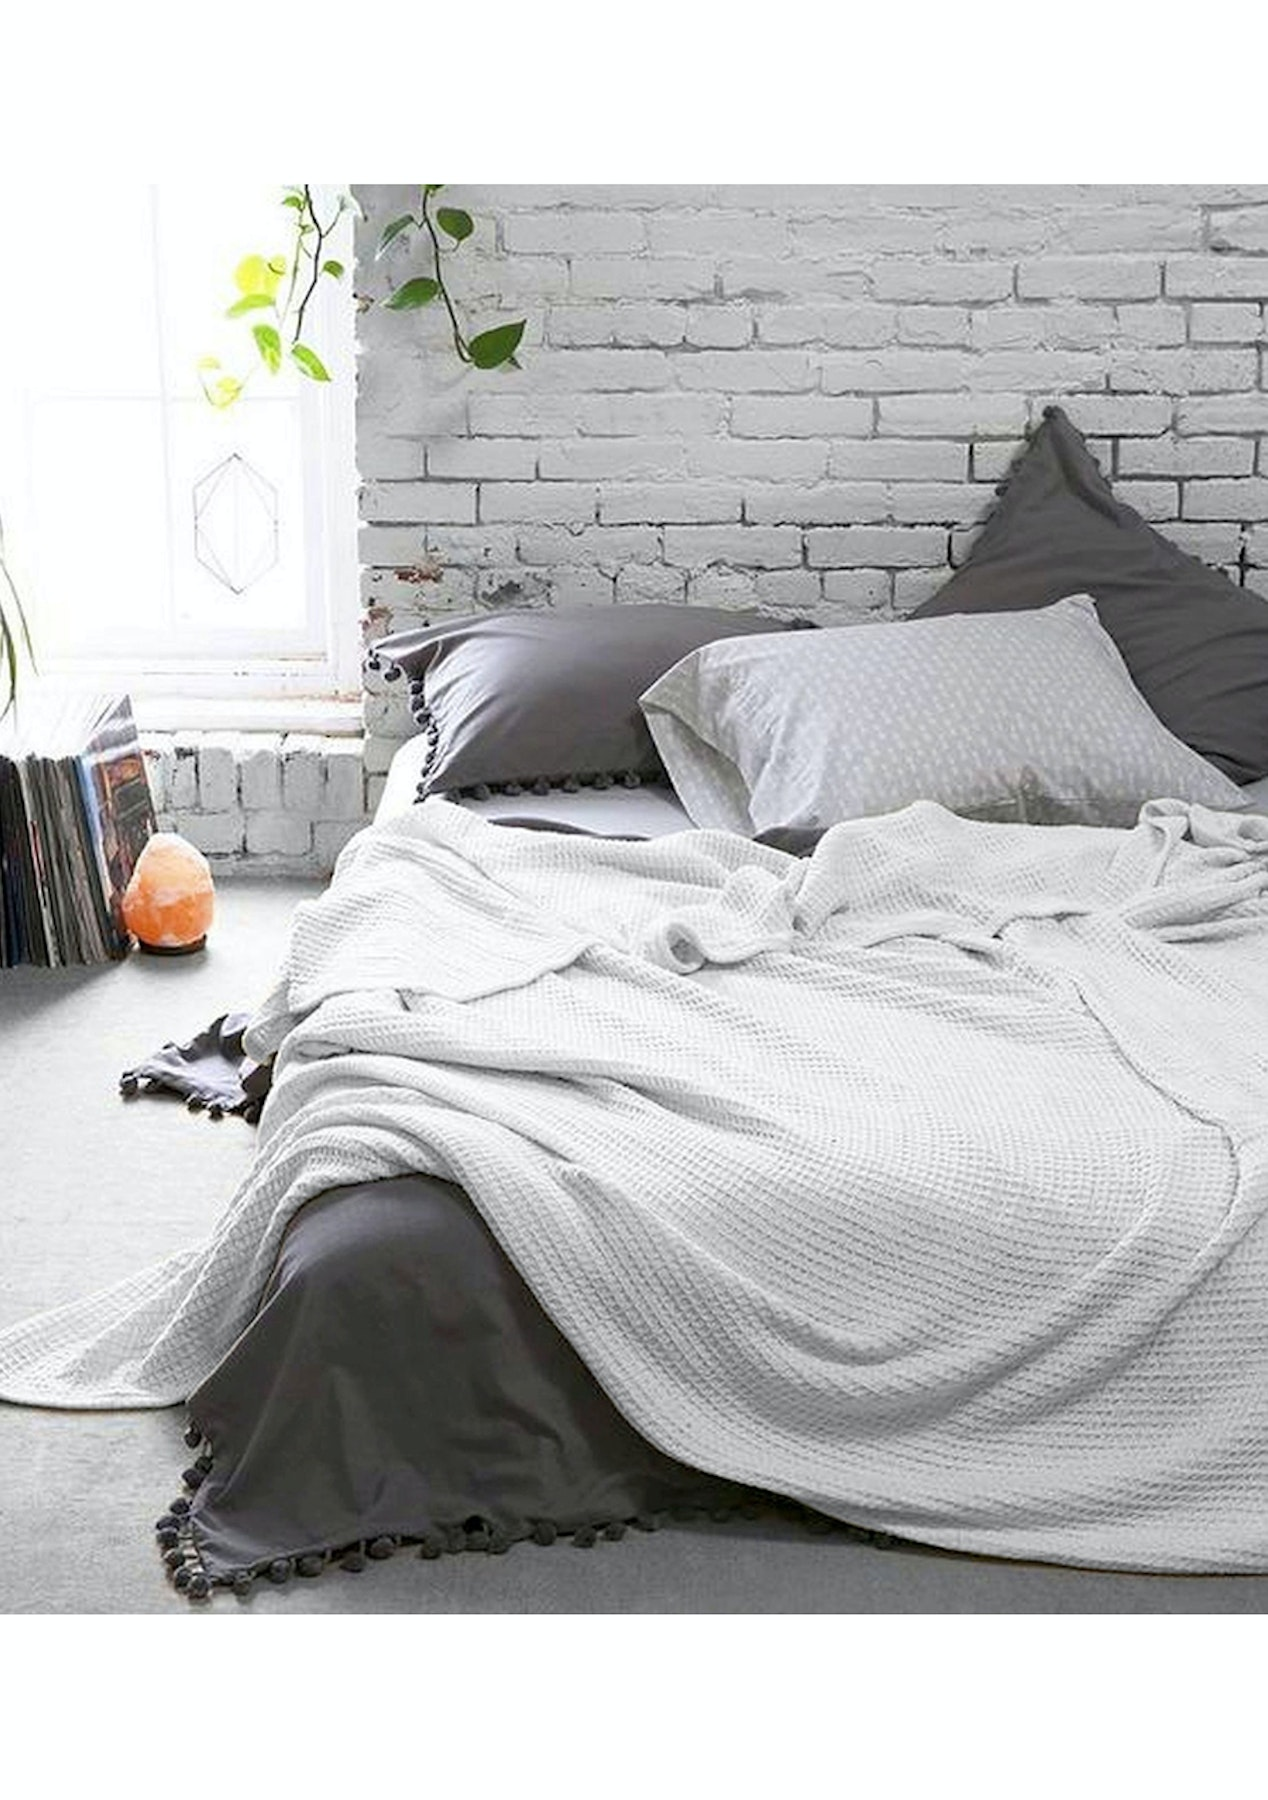 b1a4d0e19c Style   Co 100 % Cotton Waffle Blankets 160 x 220 - White - Under  100  Vintage Wash Bedding - Onceit